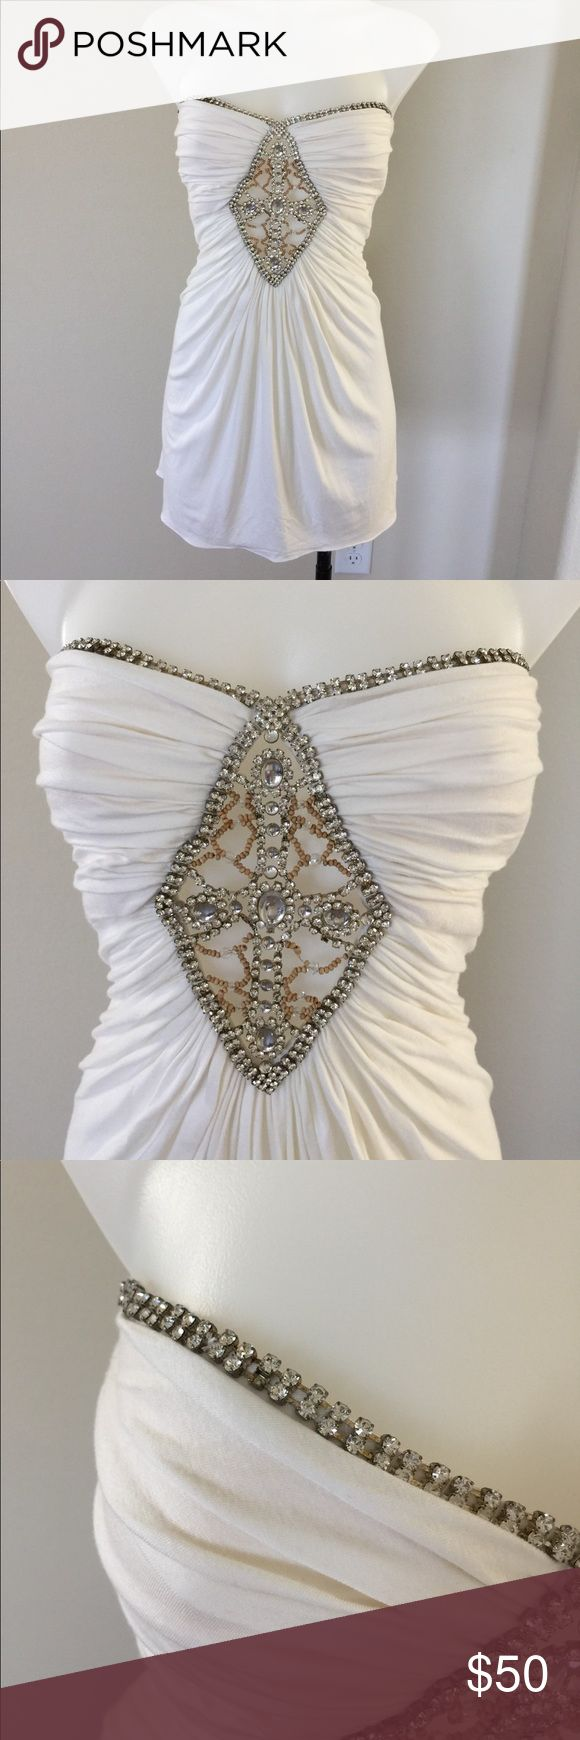 Sky cream rhinestone dress/top Gently worn , size XS, stretchy , rhinestone detail , one rhinestone missing as shown but not noticeable, approx 23 inches from top to bottom Sky Dresses Strapless